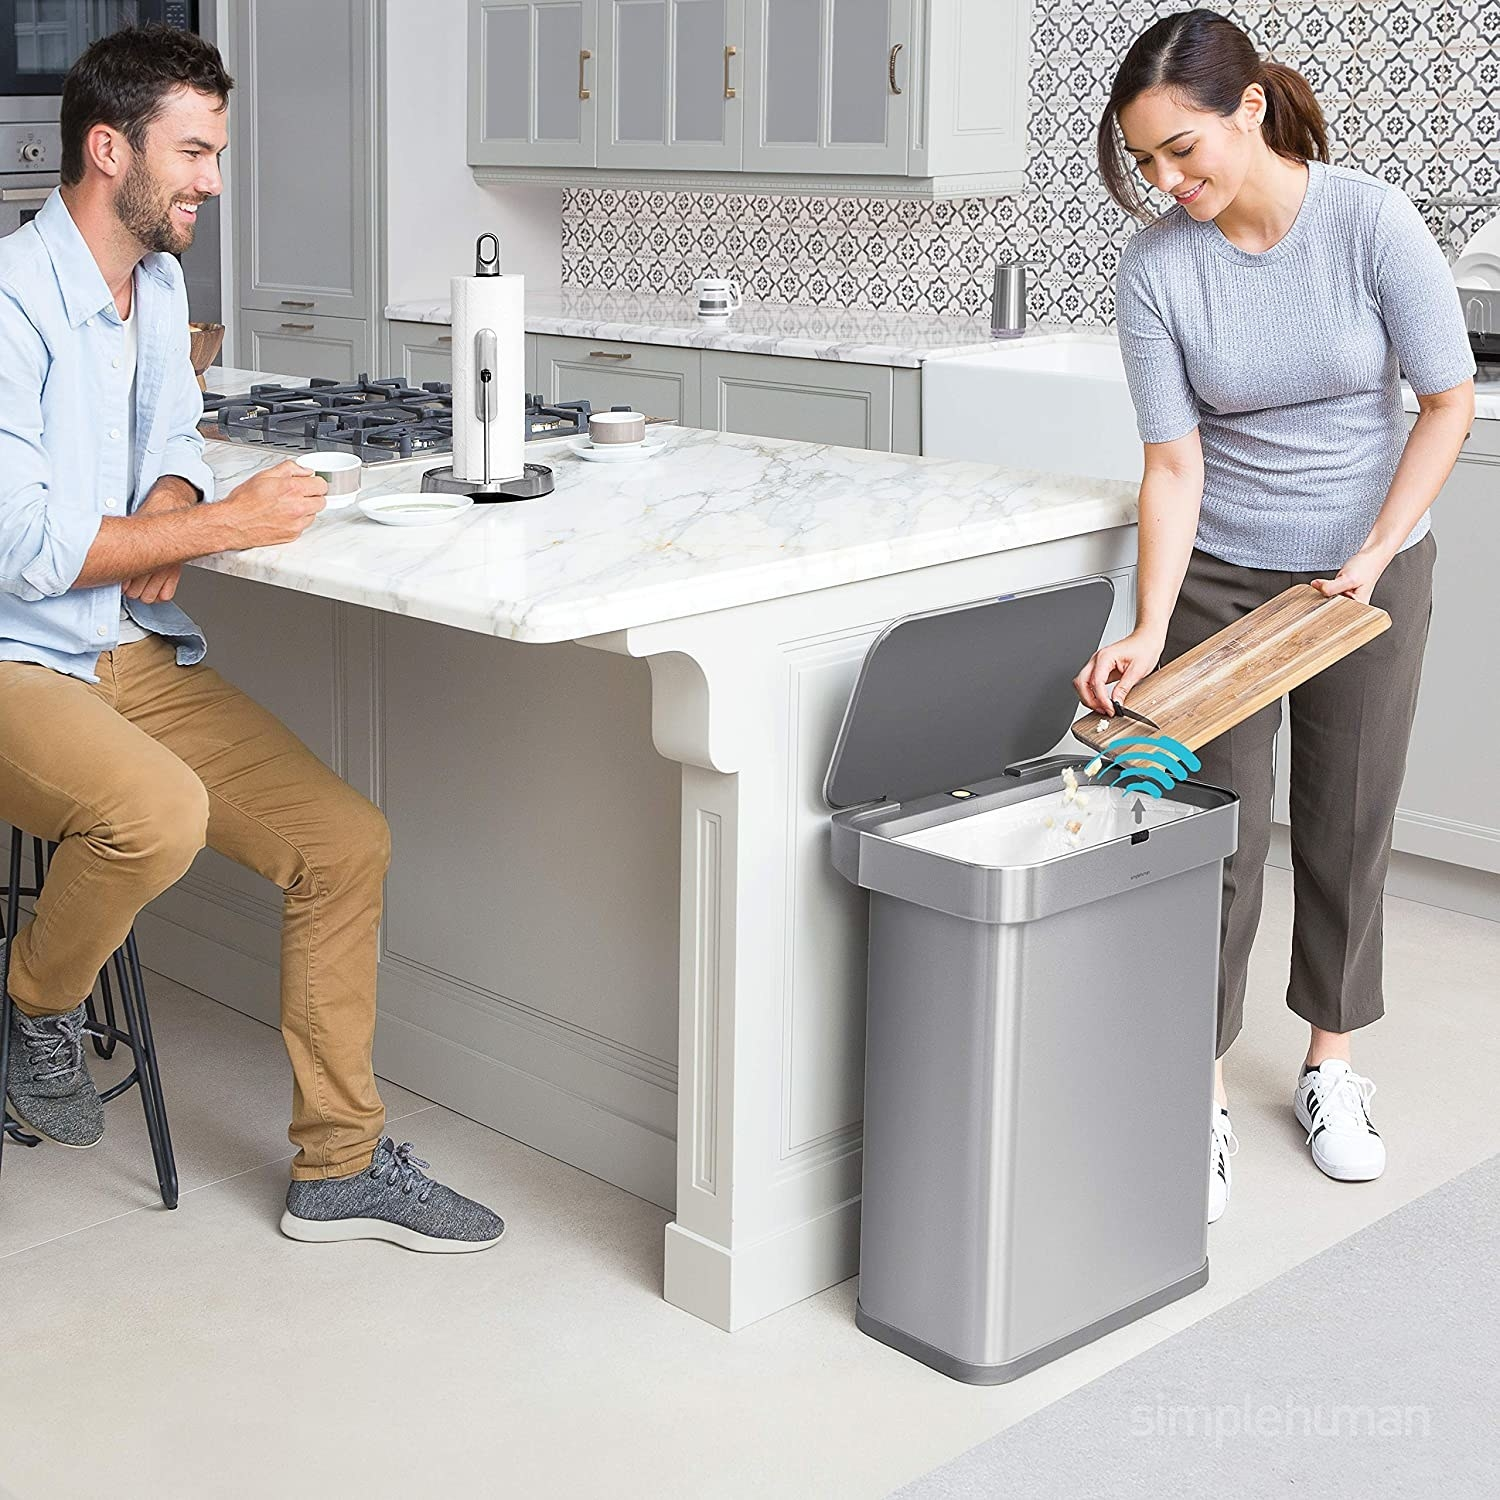 Simplehuman voice-activated garbage can